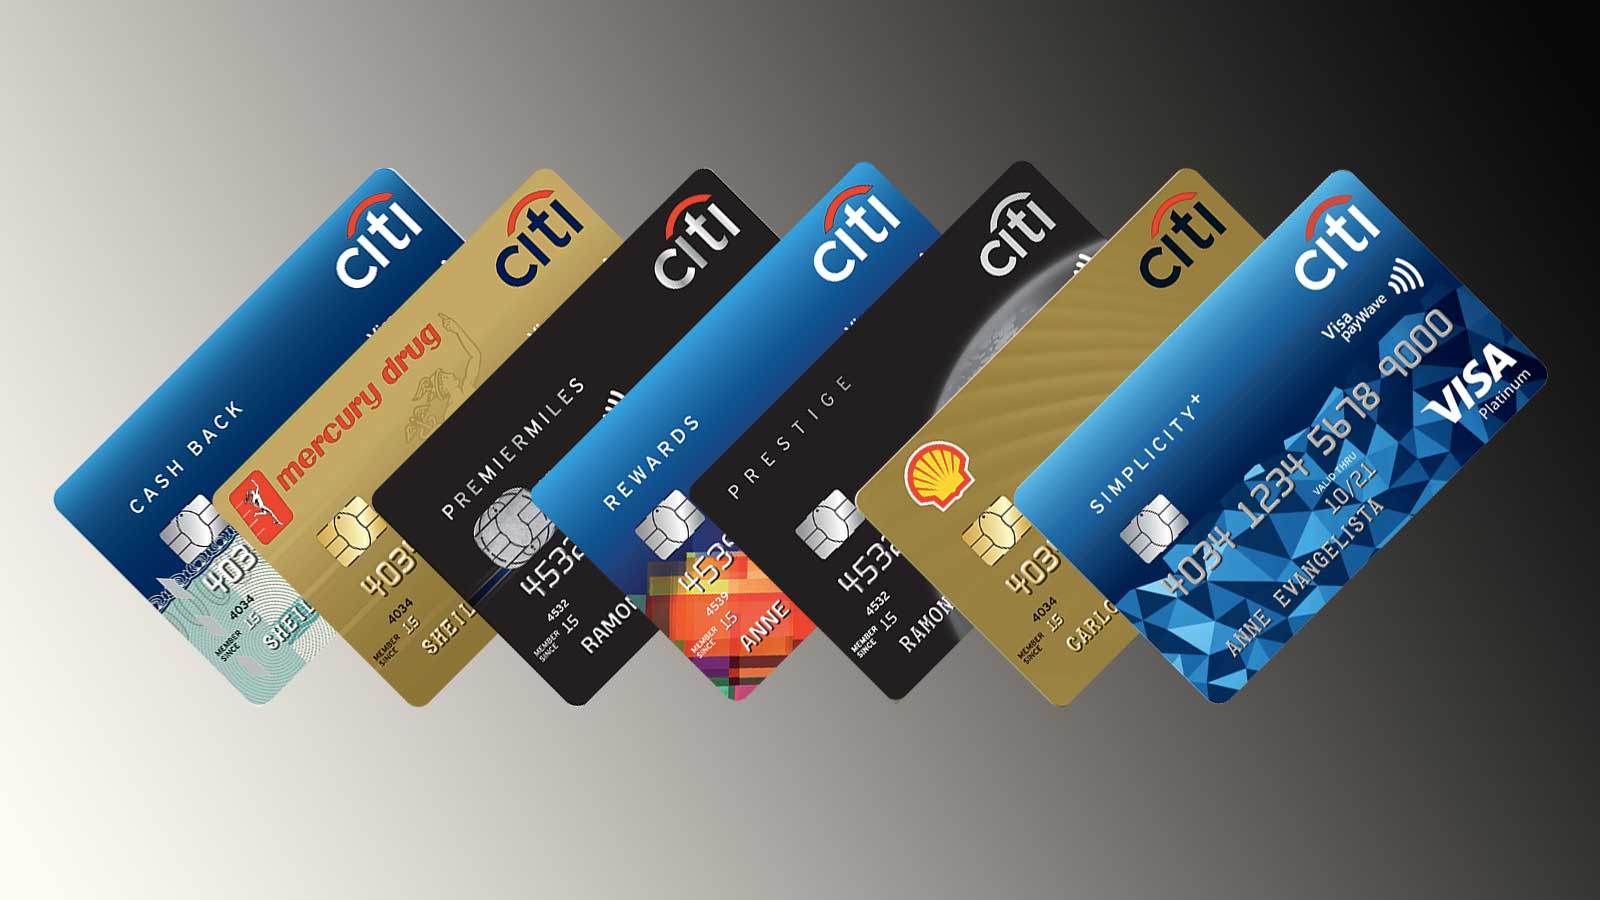 Own a Citi Credit Card